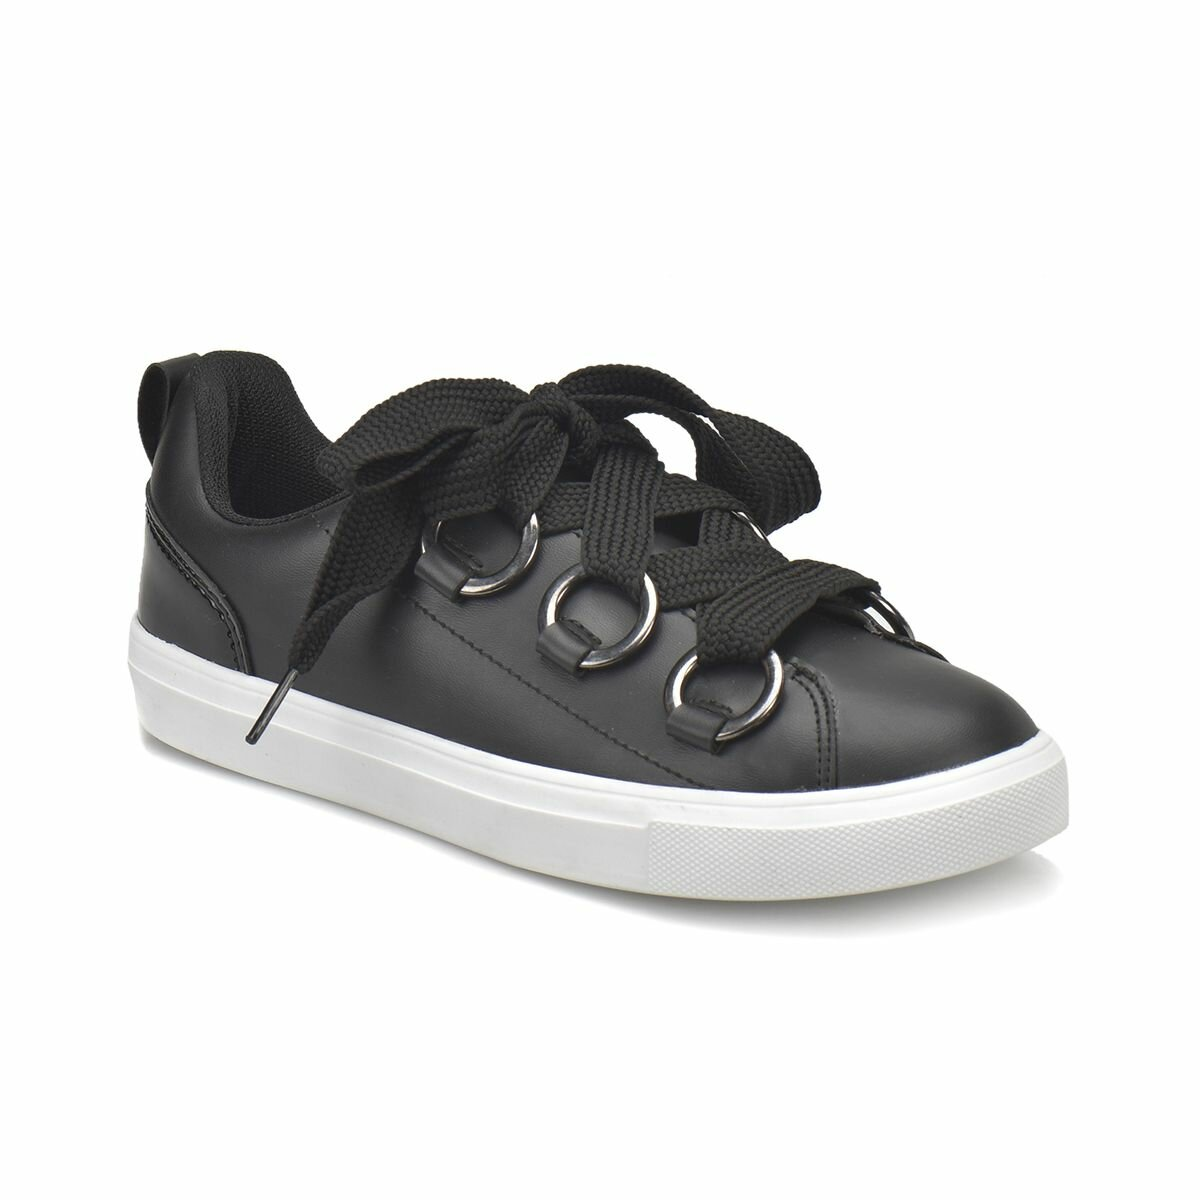 FLO CS18097 Black Women 'S Sneaker Shoes Art Bella